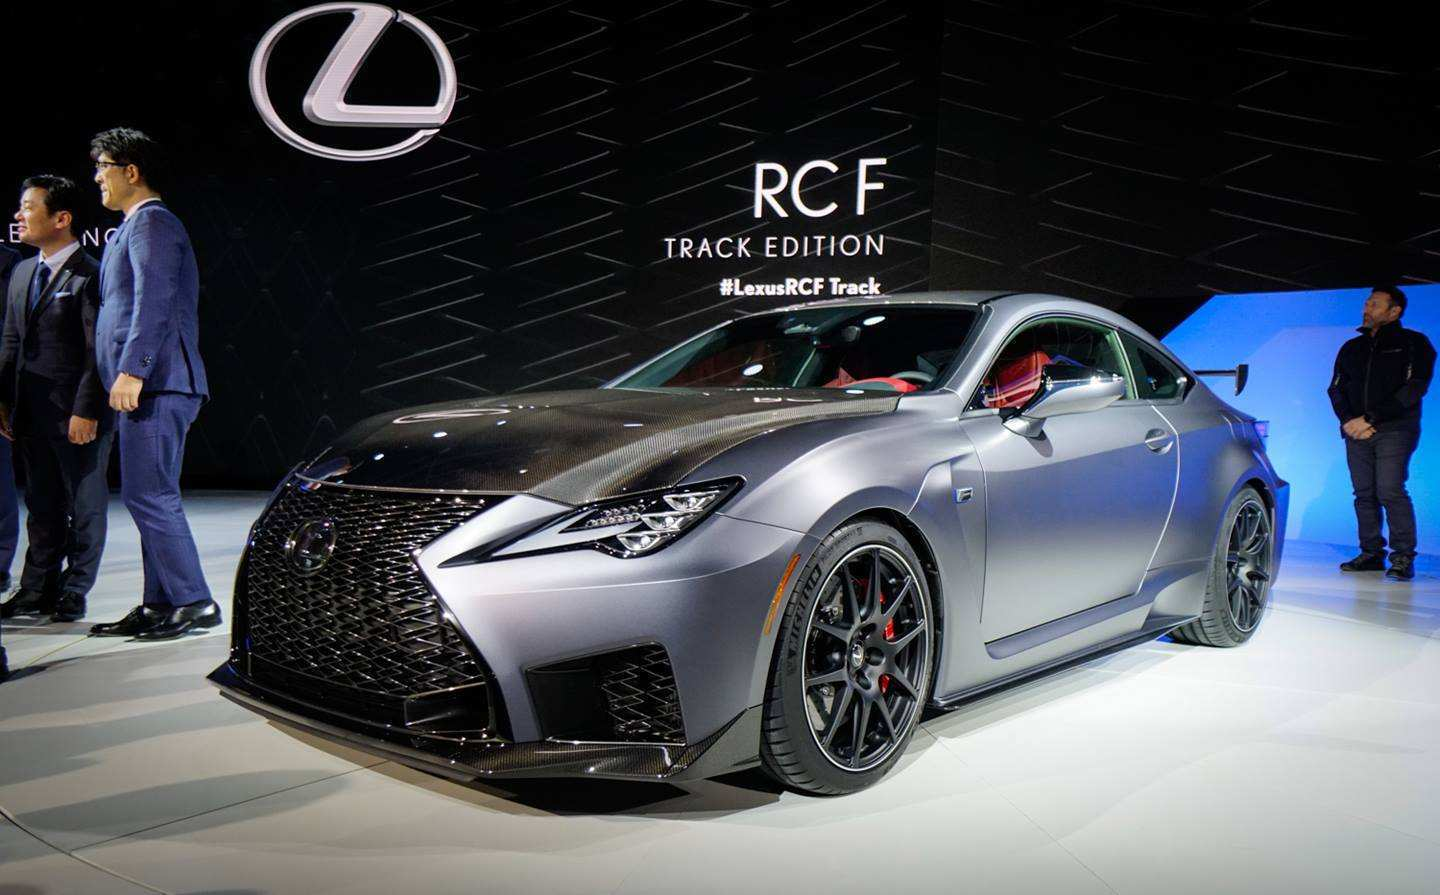 12 A 2020 Lexus Rc F Track Edition 0 60 New Concept